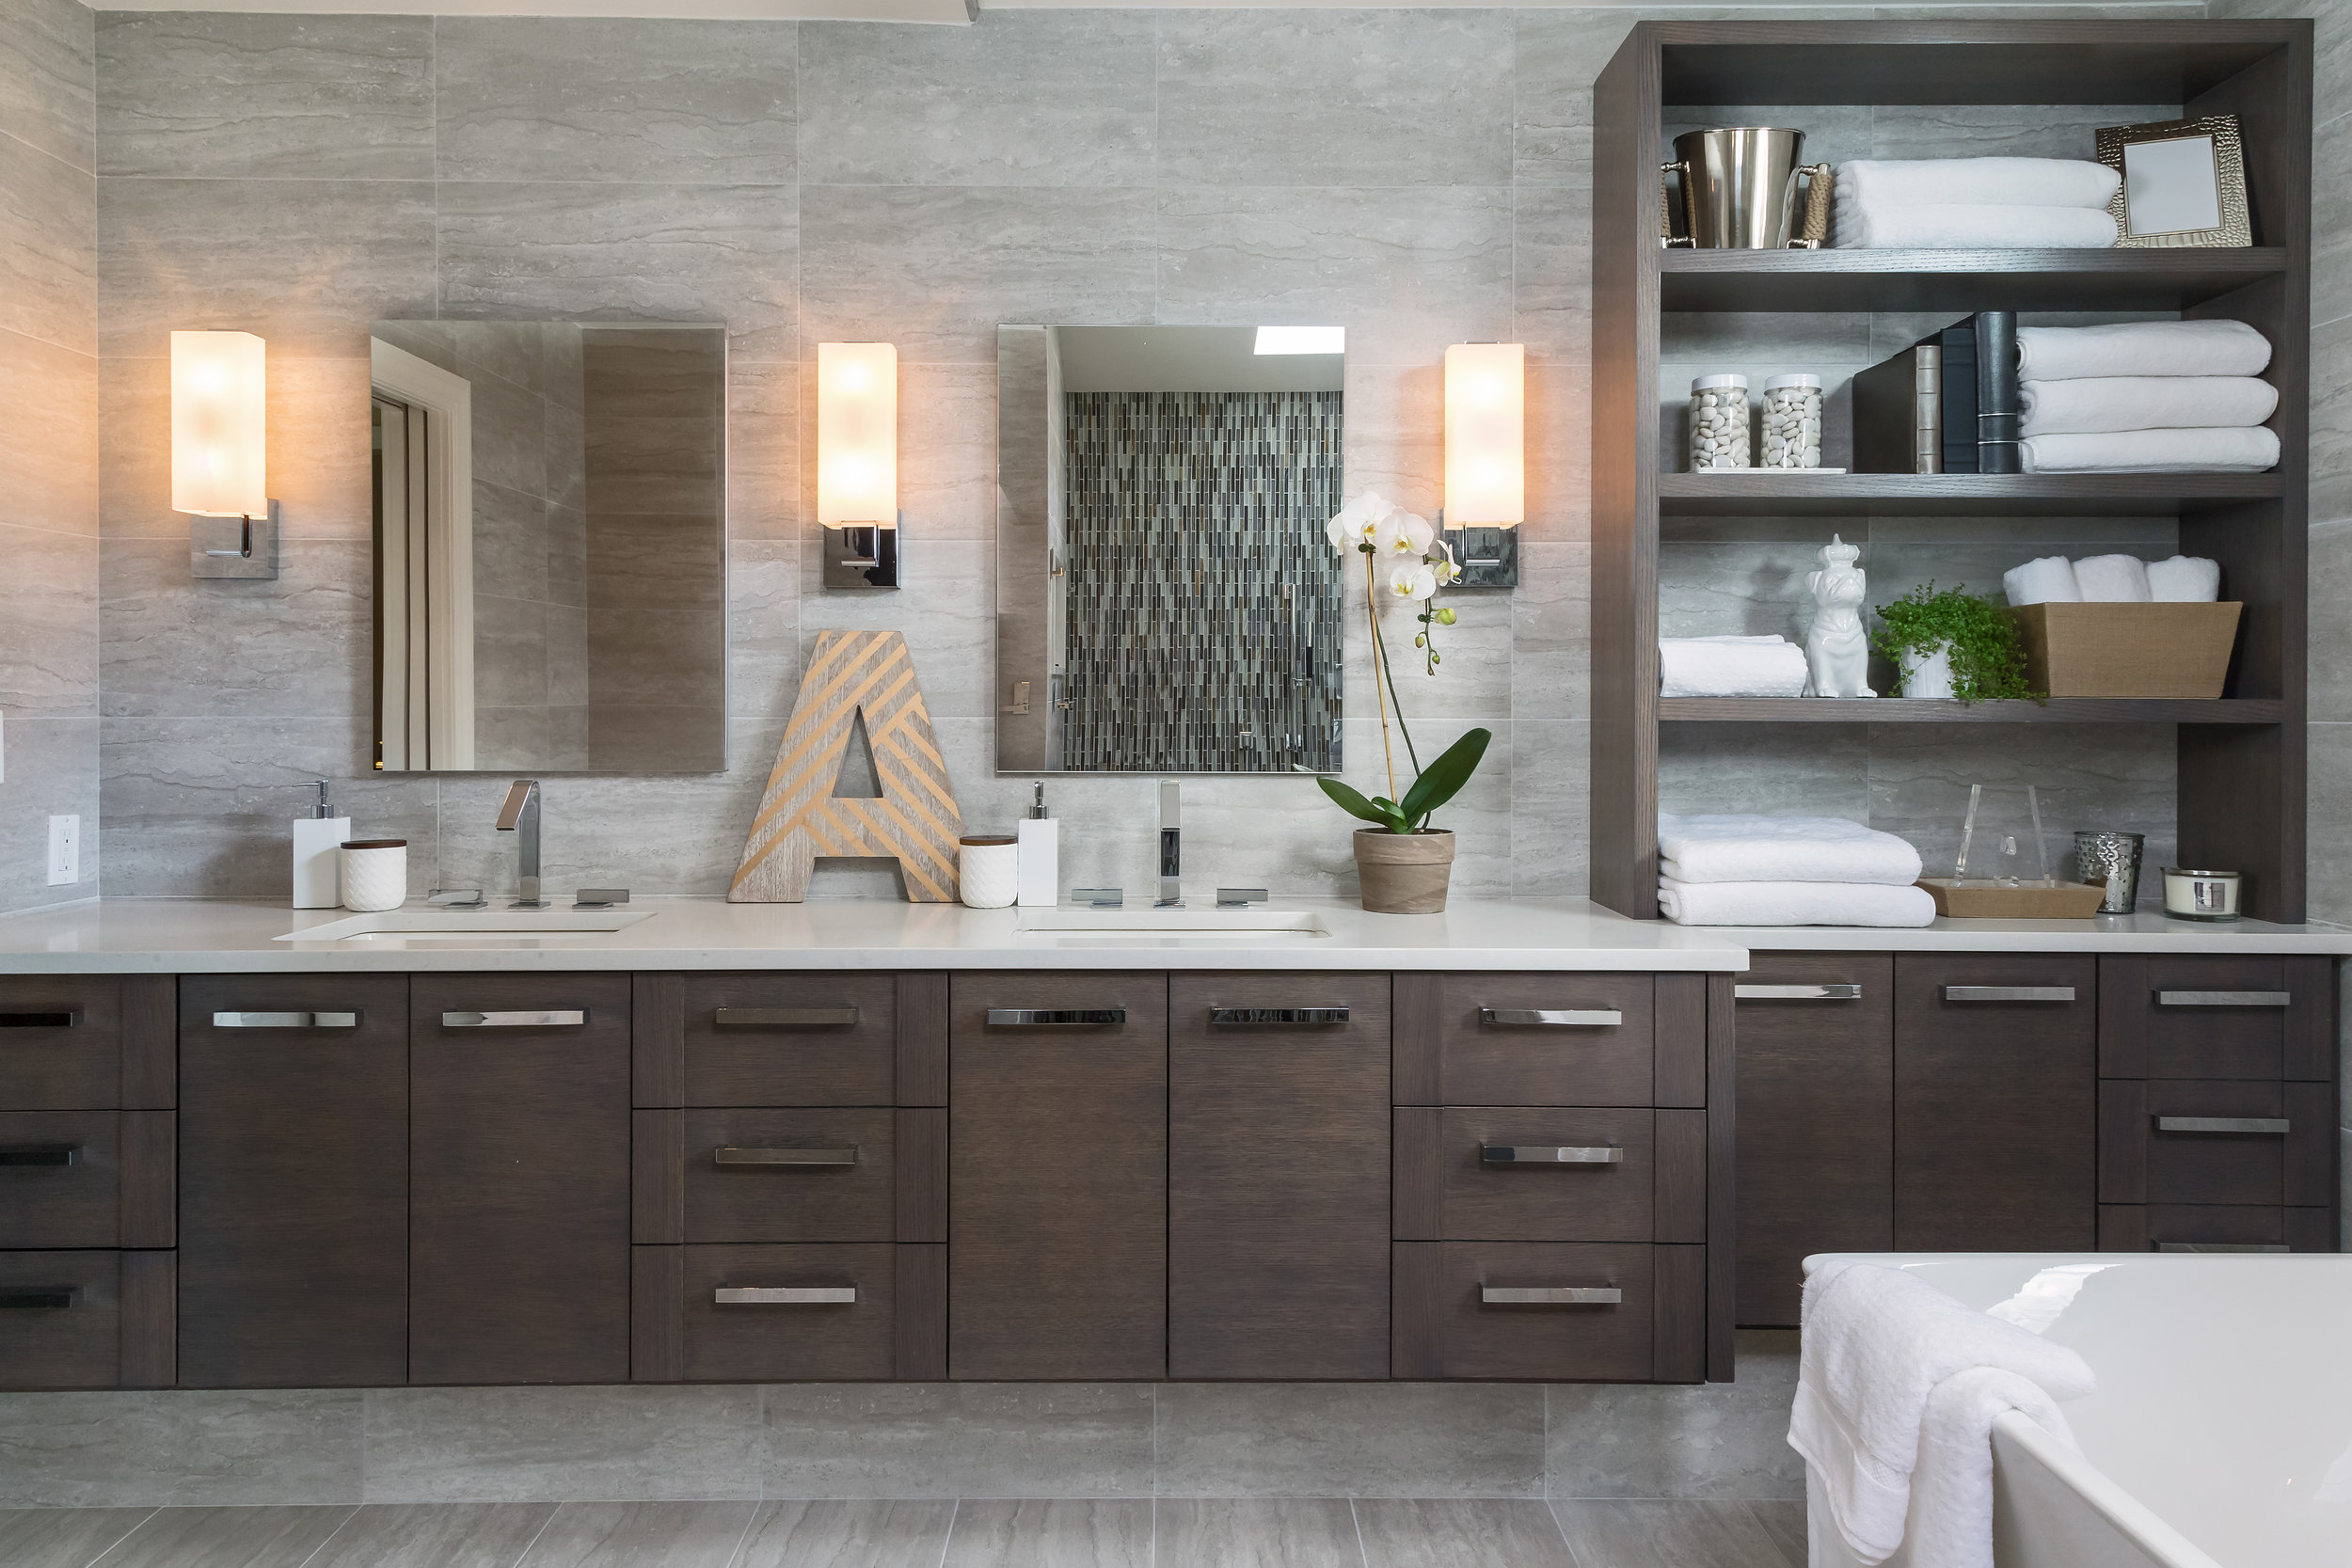 Modern bathroom with long counter with multiple sinks